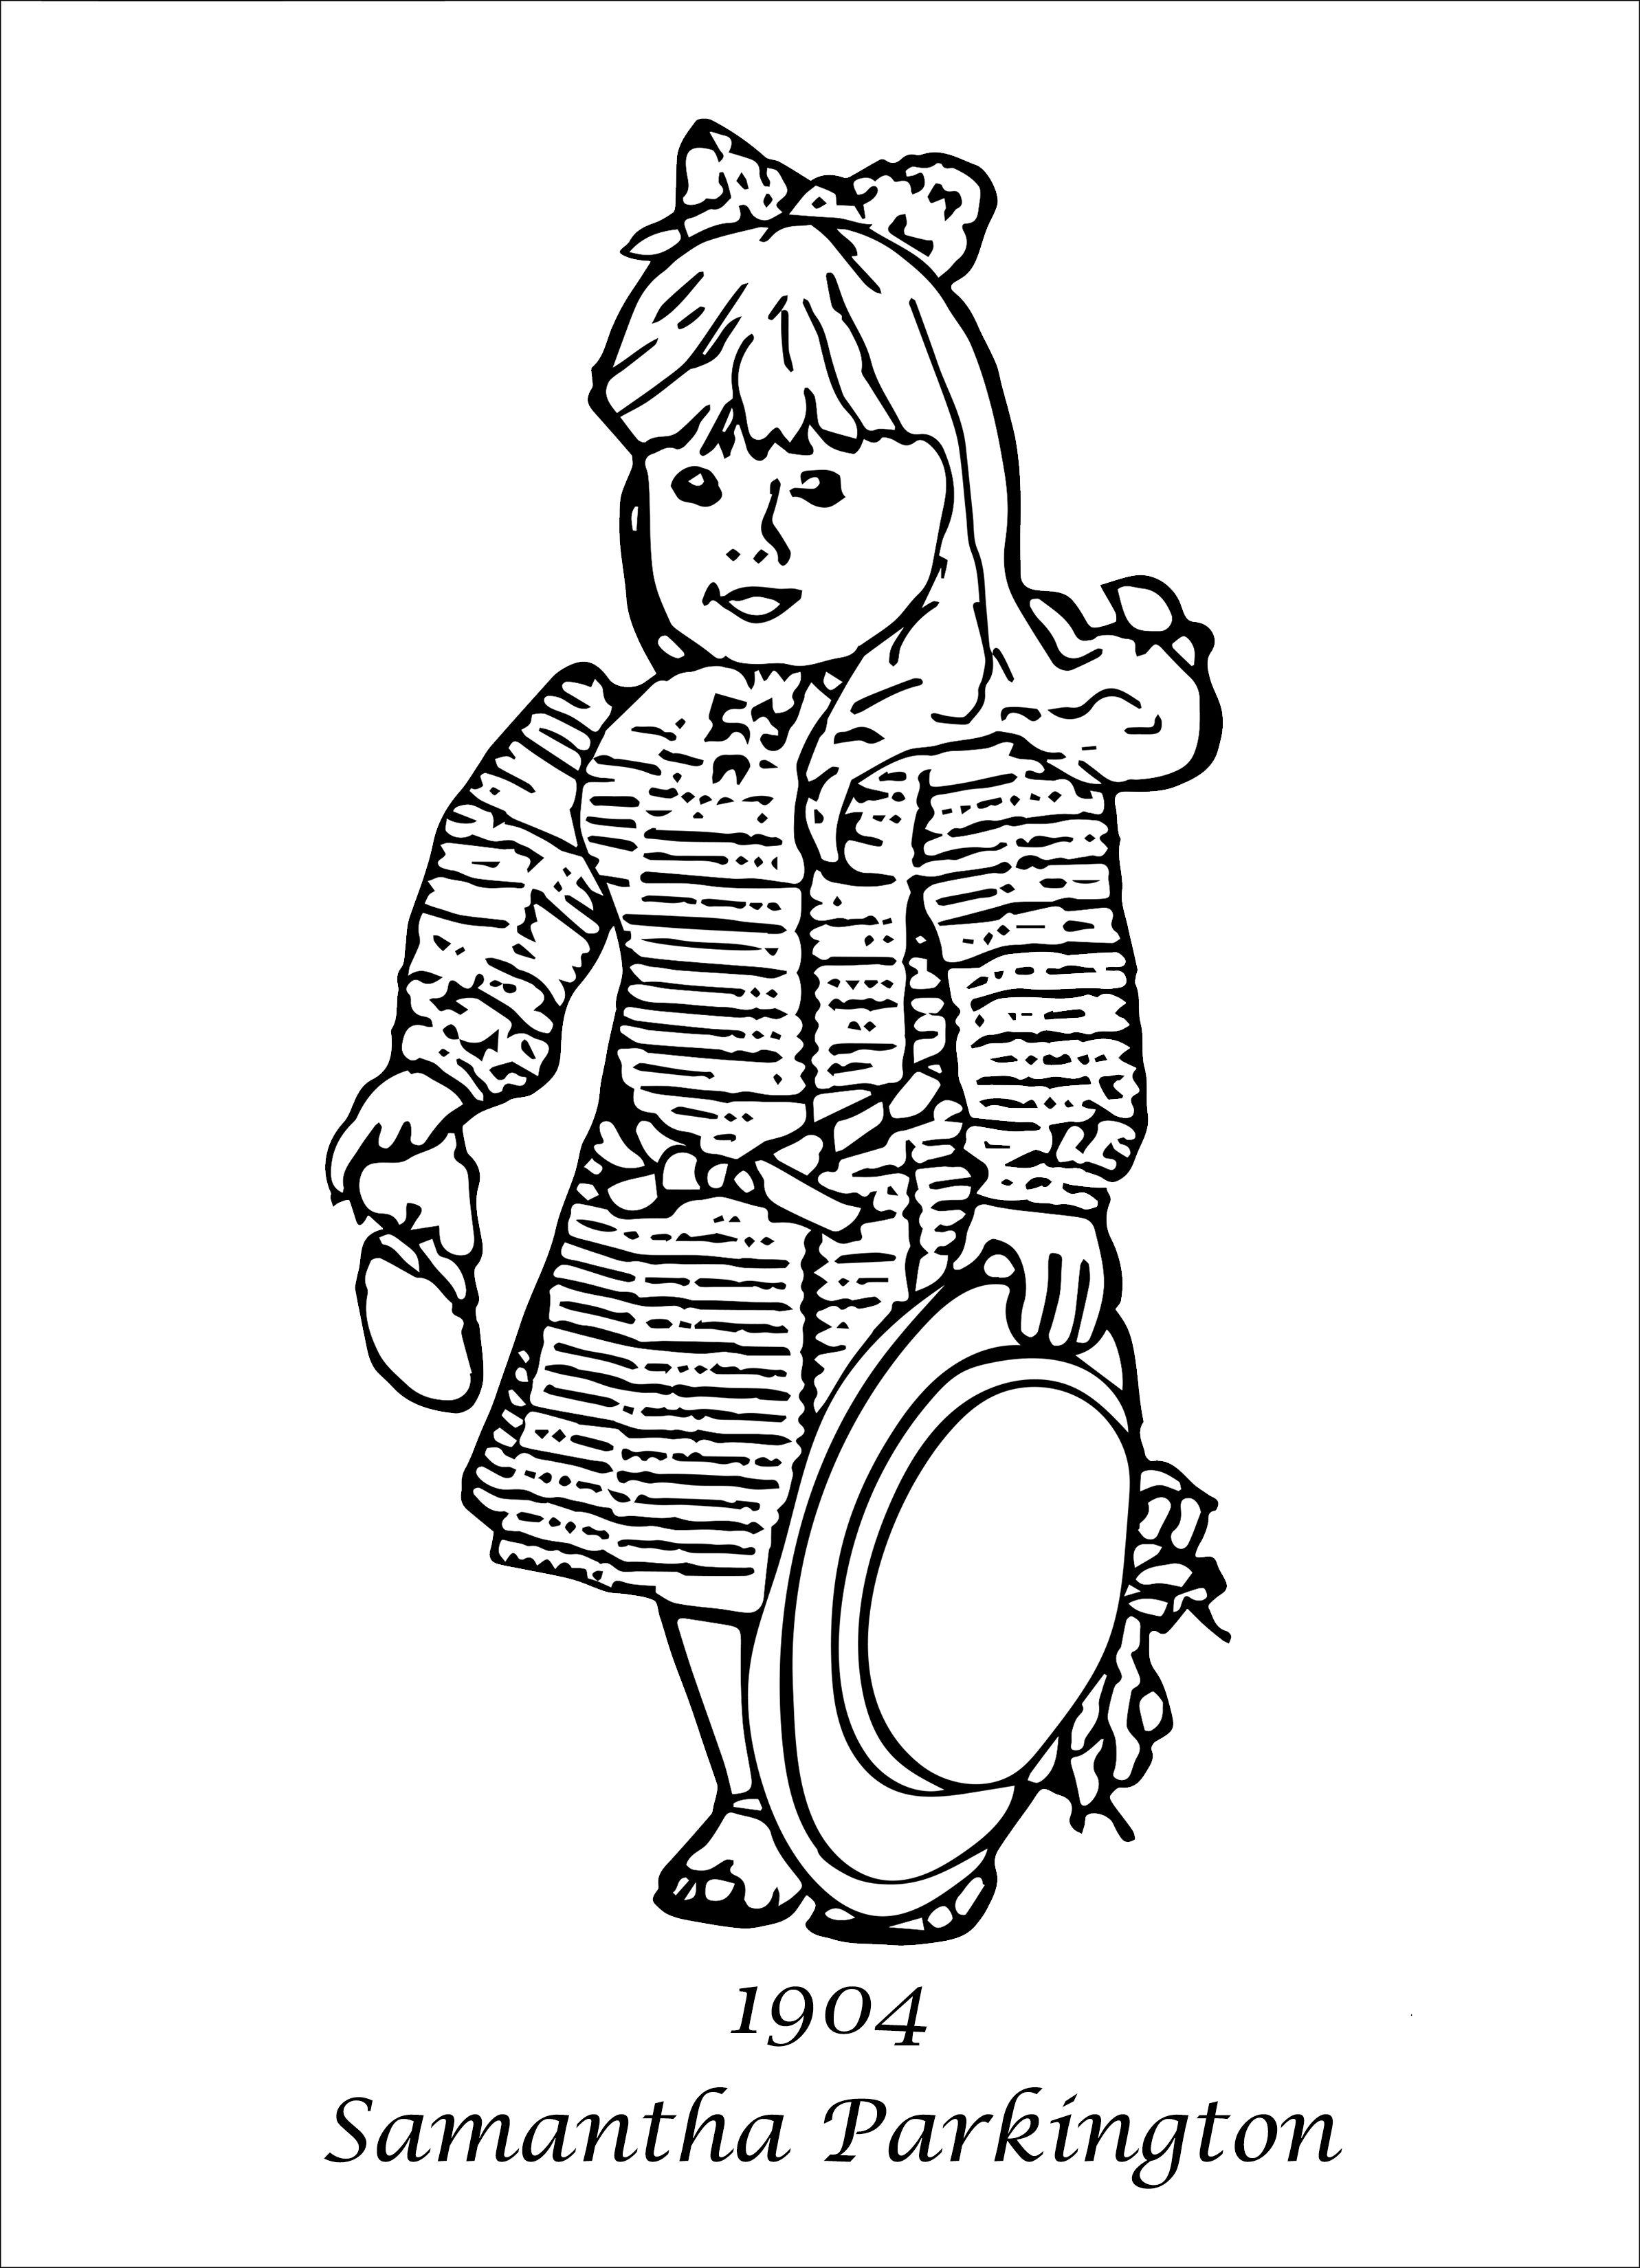 American Girl Coloring Pages Coloring Pages For Girls Captain America Coloring Pages Coloring Pages